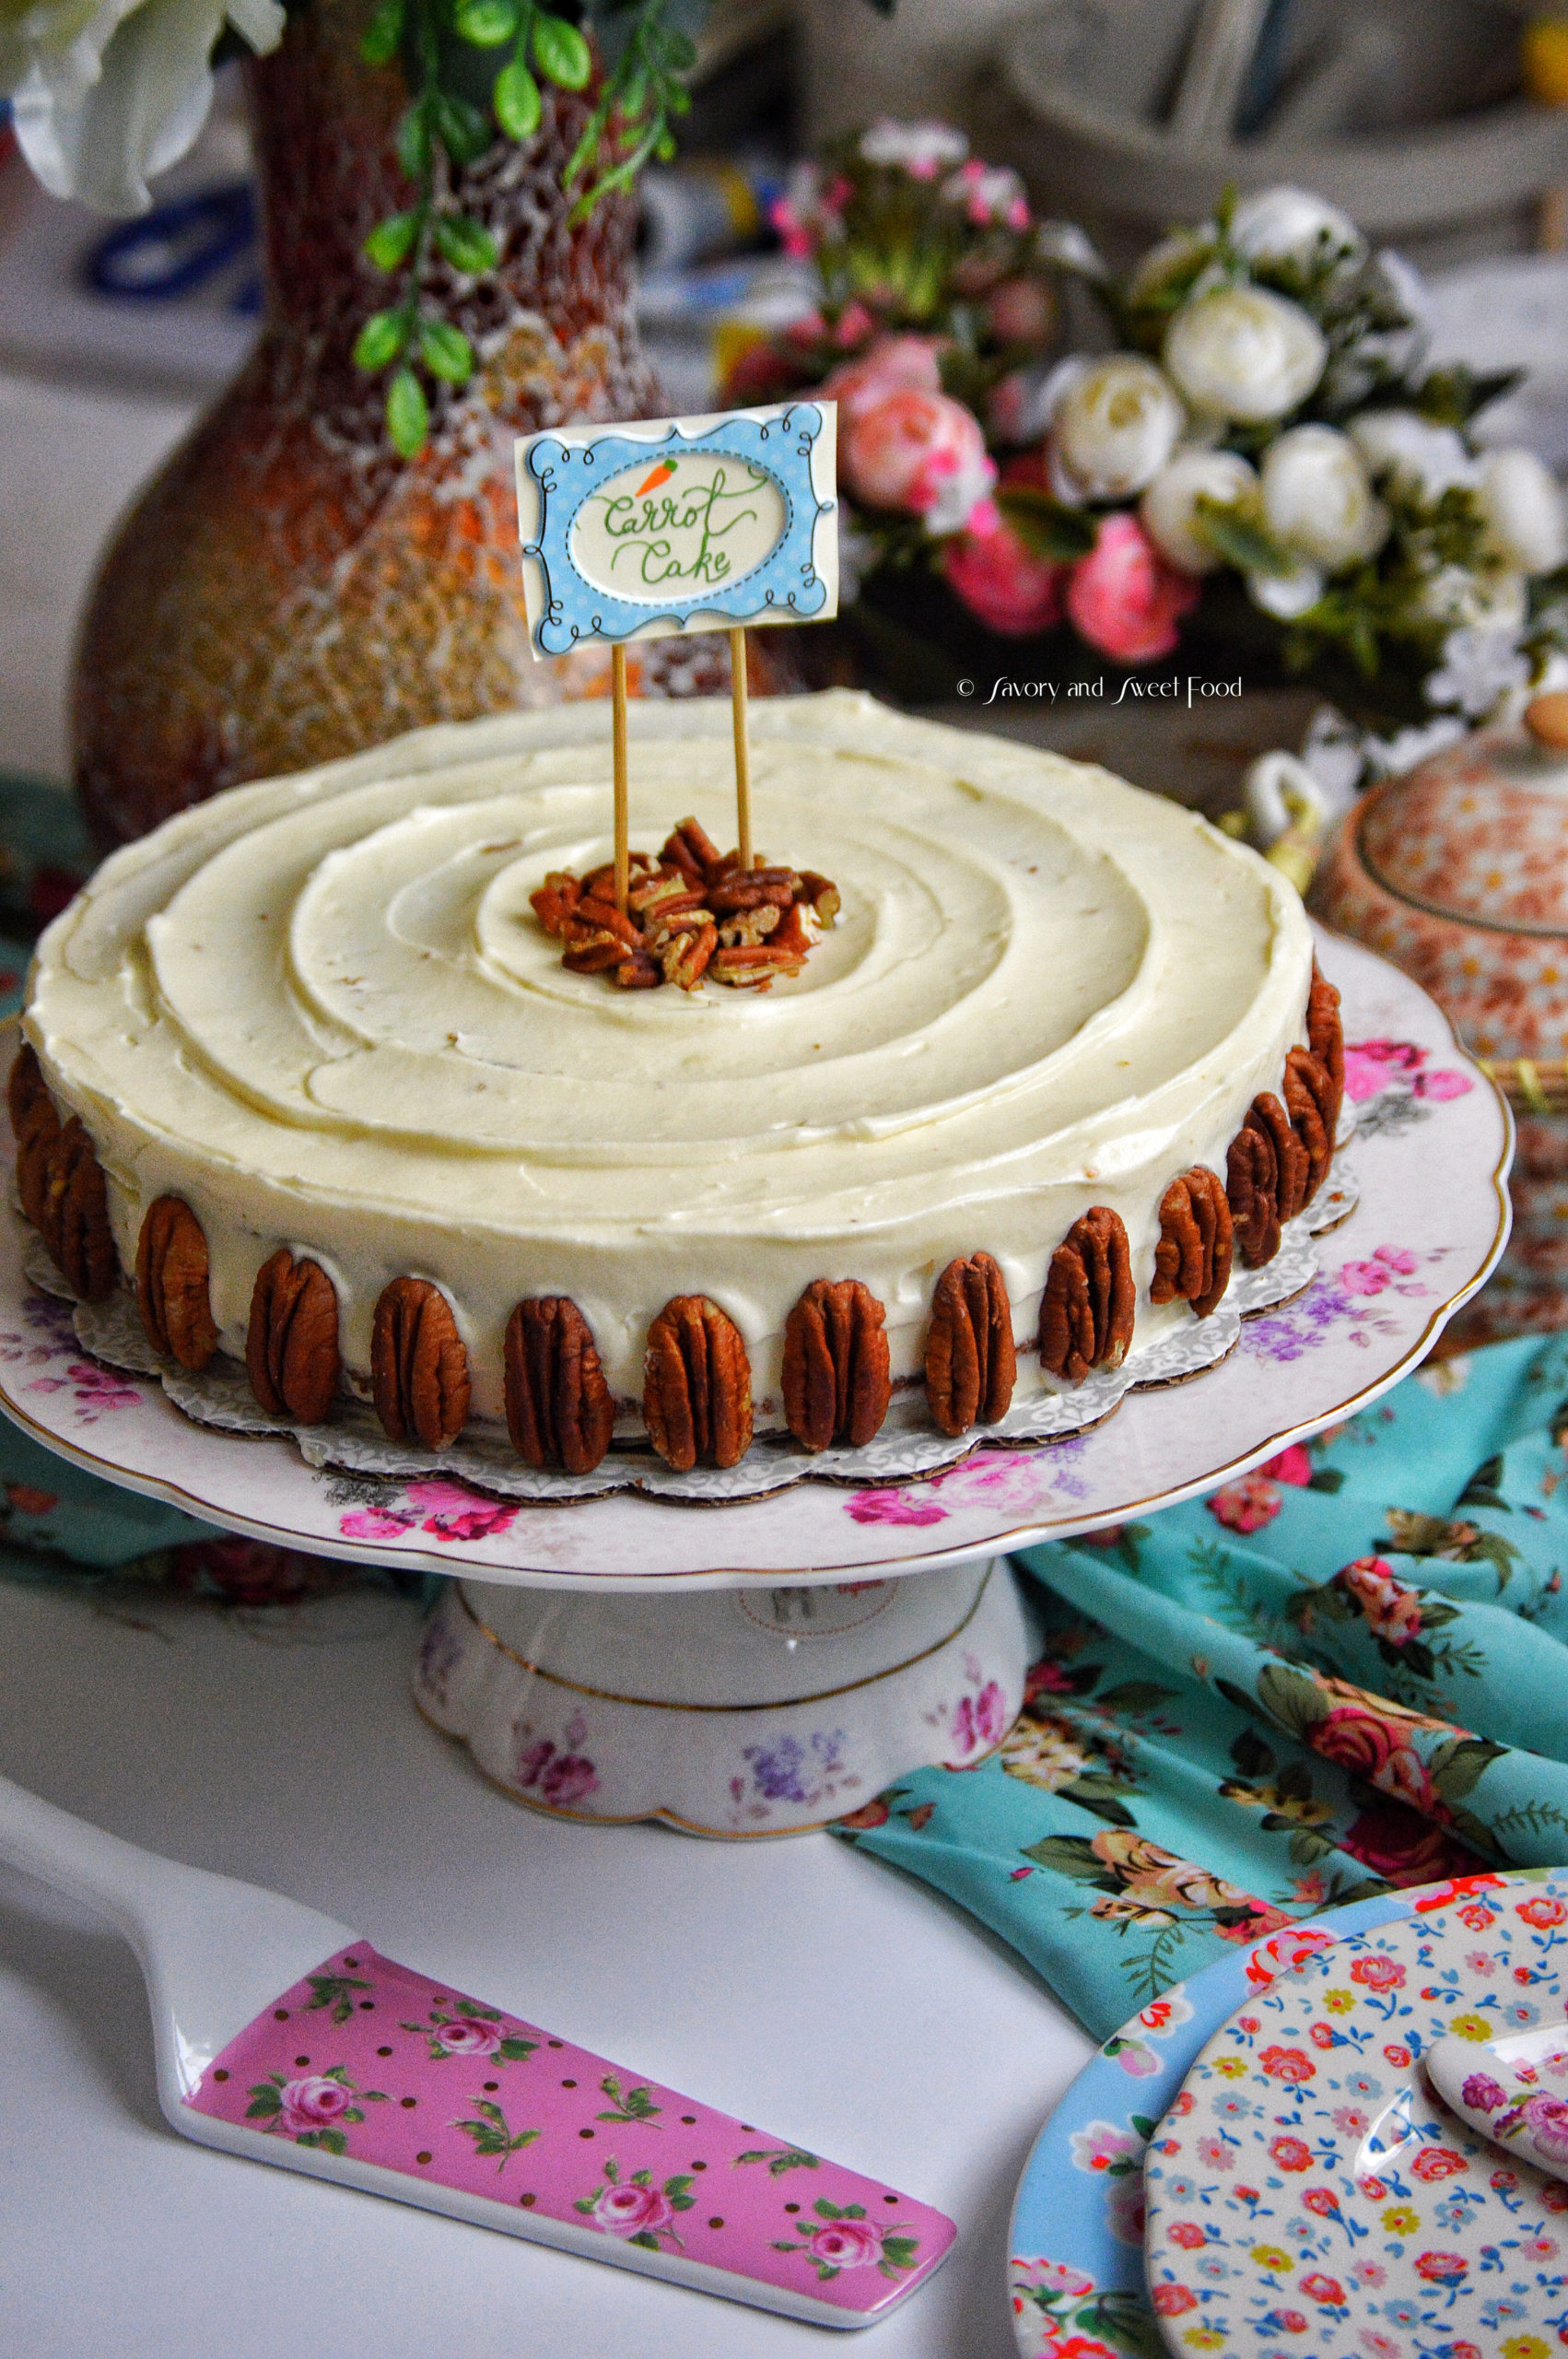 Perfect Carrot Cake With Cream Cheese Frosting Savory Sweetfood